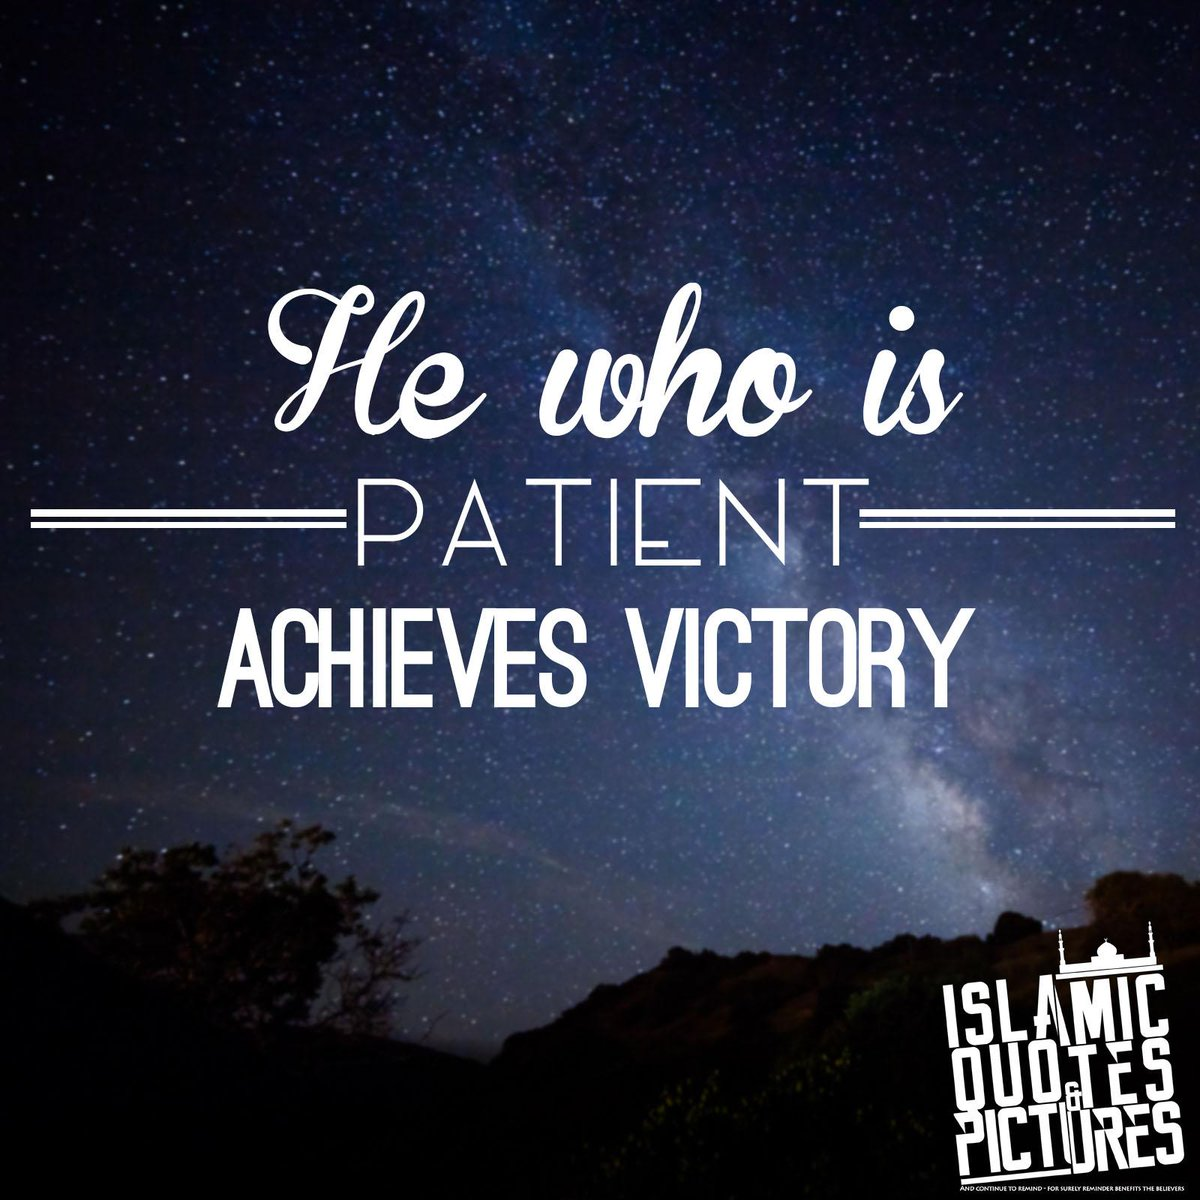 islamic quotes pics on twitter he who is patient achieves